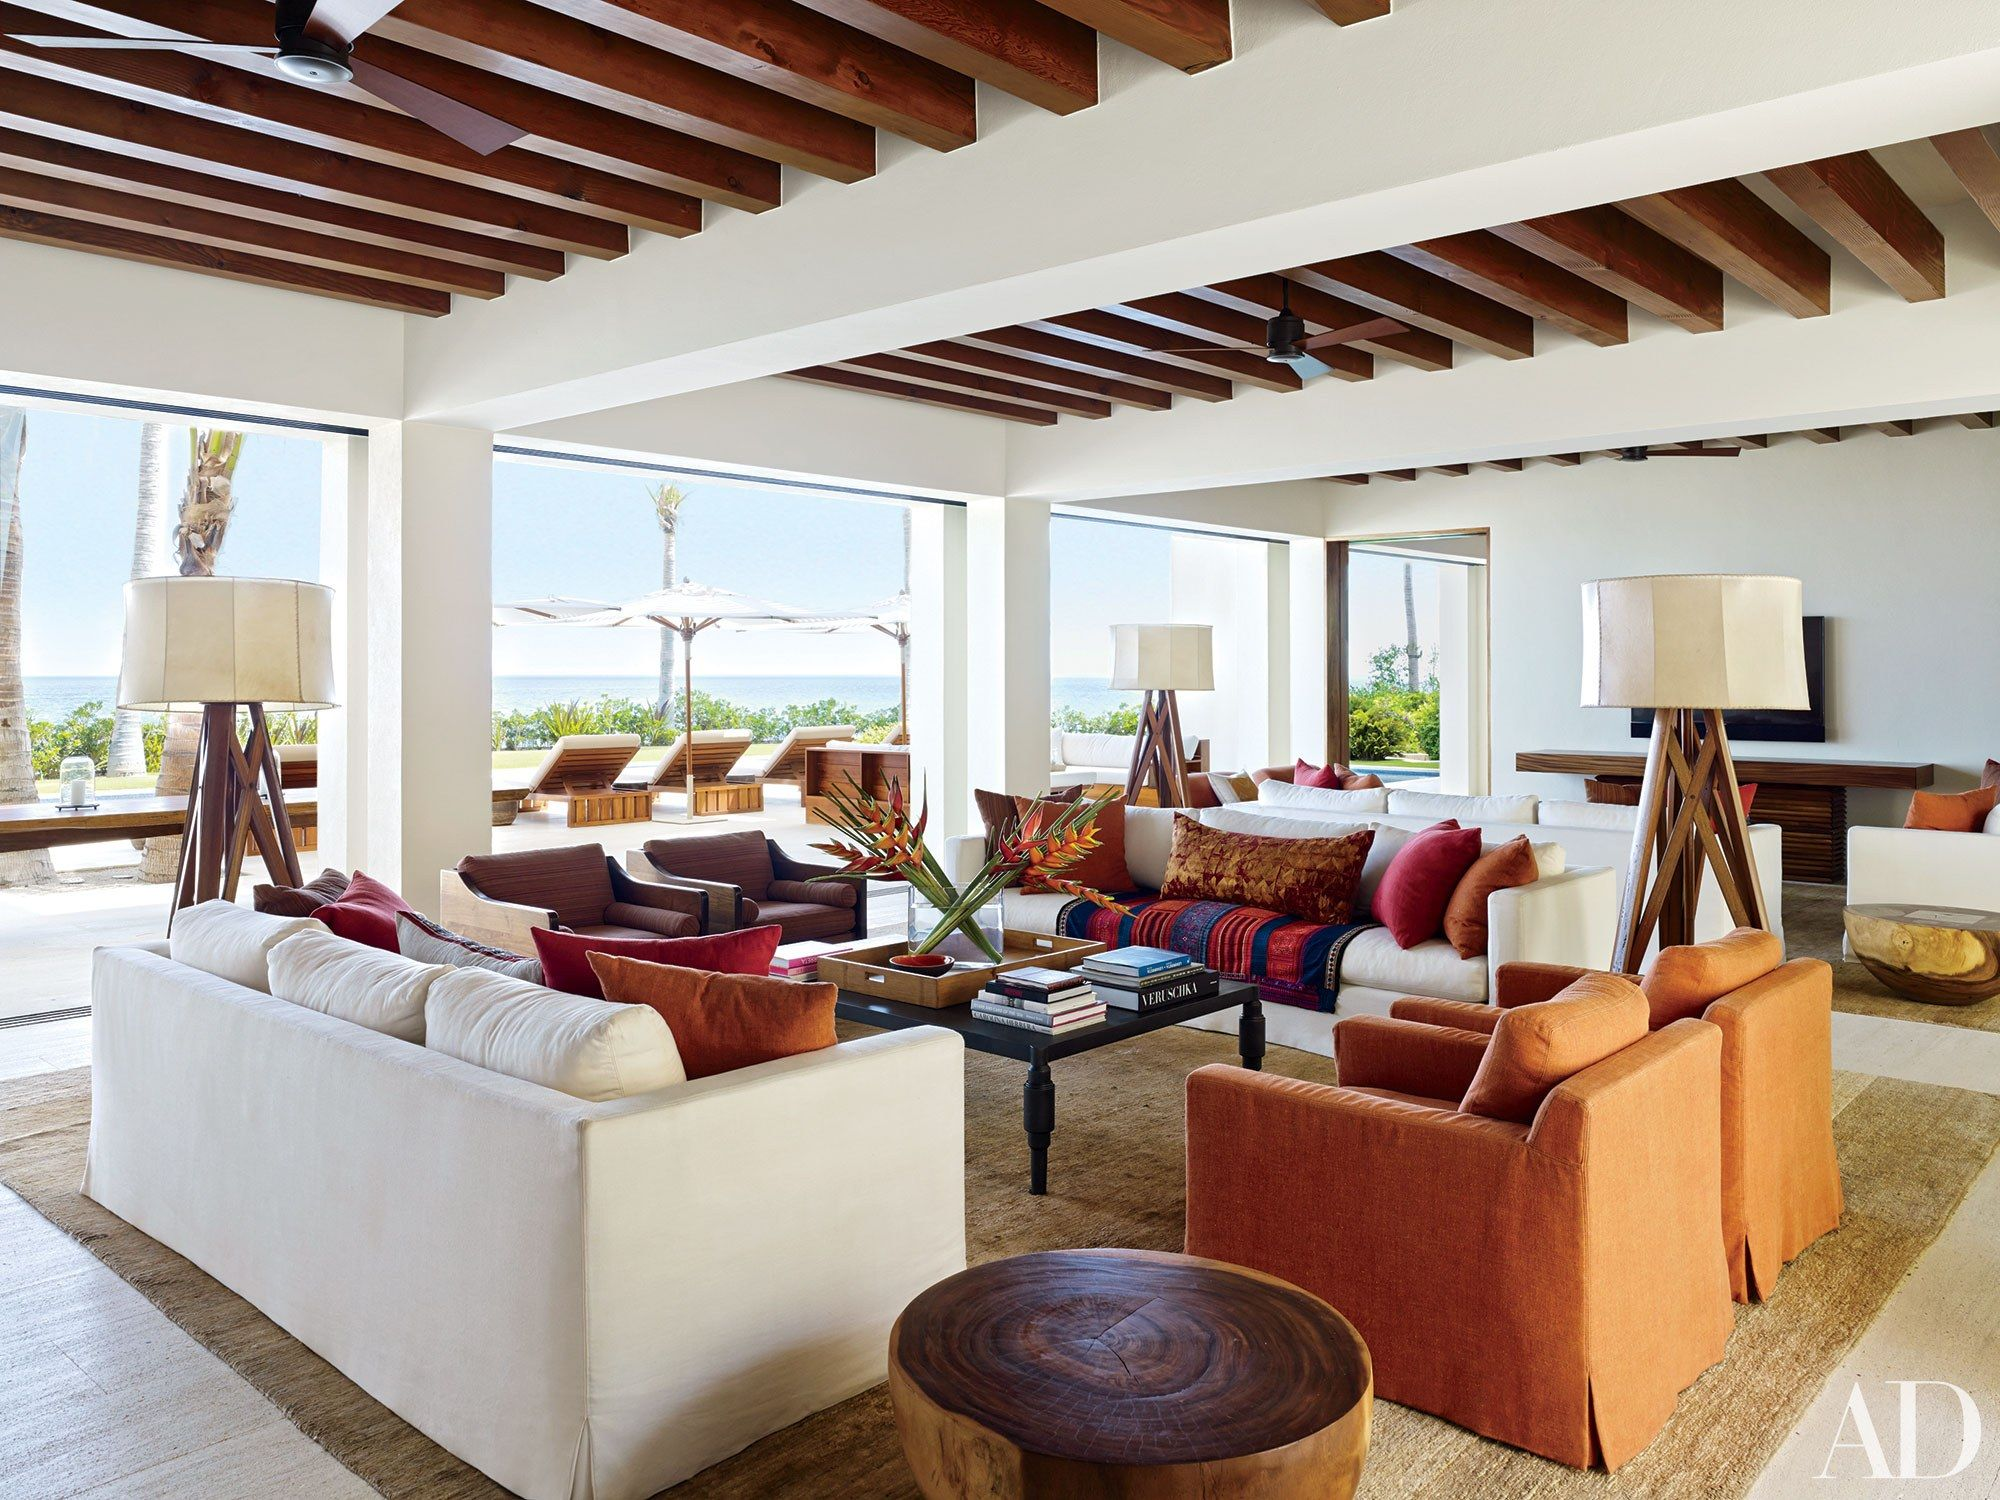 Structural Ceiling Beams Photos - Architectural Digest